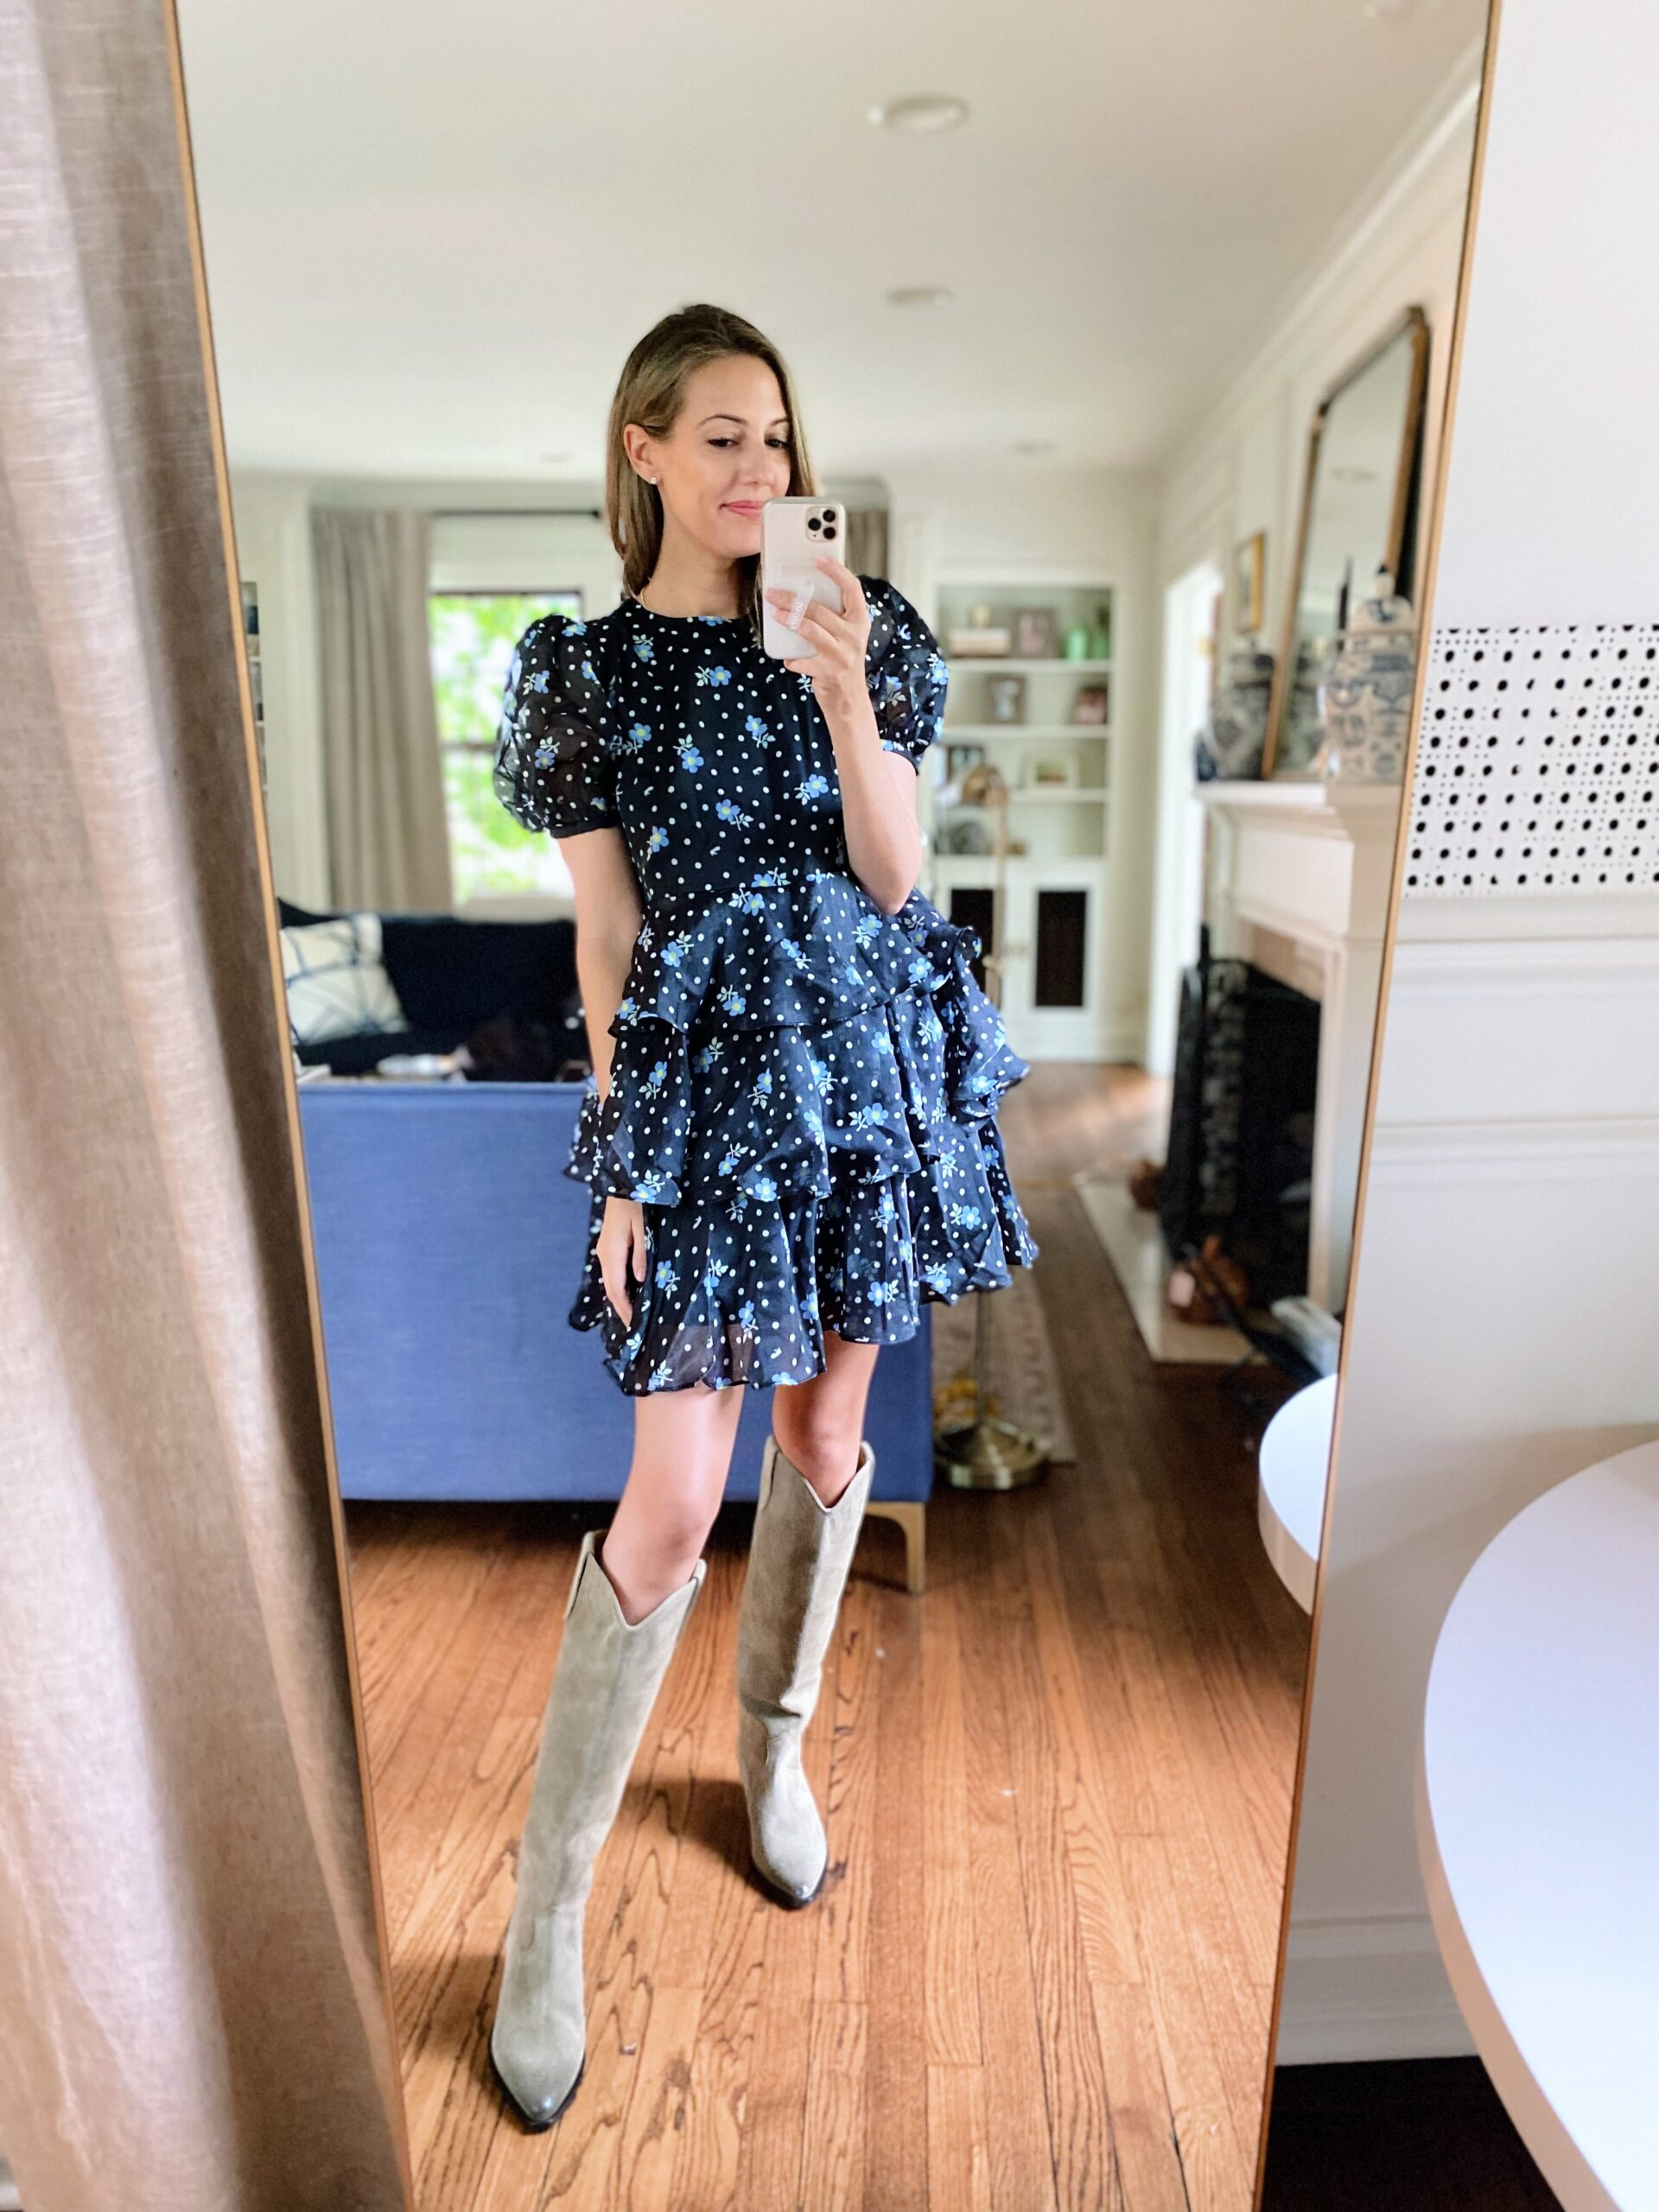 woman in blue dress and boots from Target Tuesday